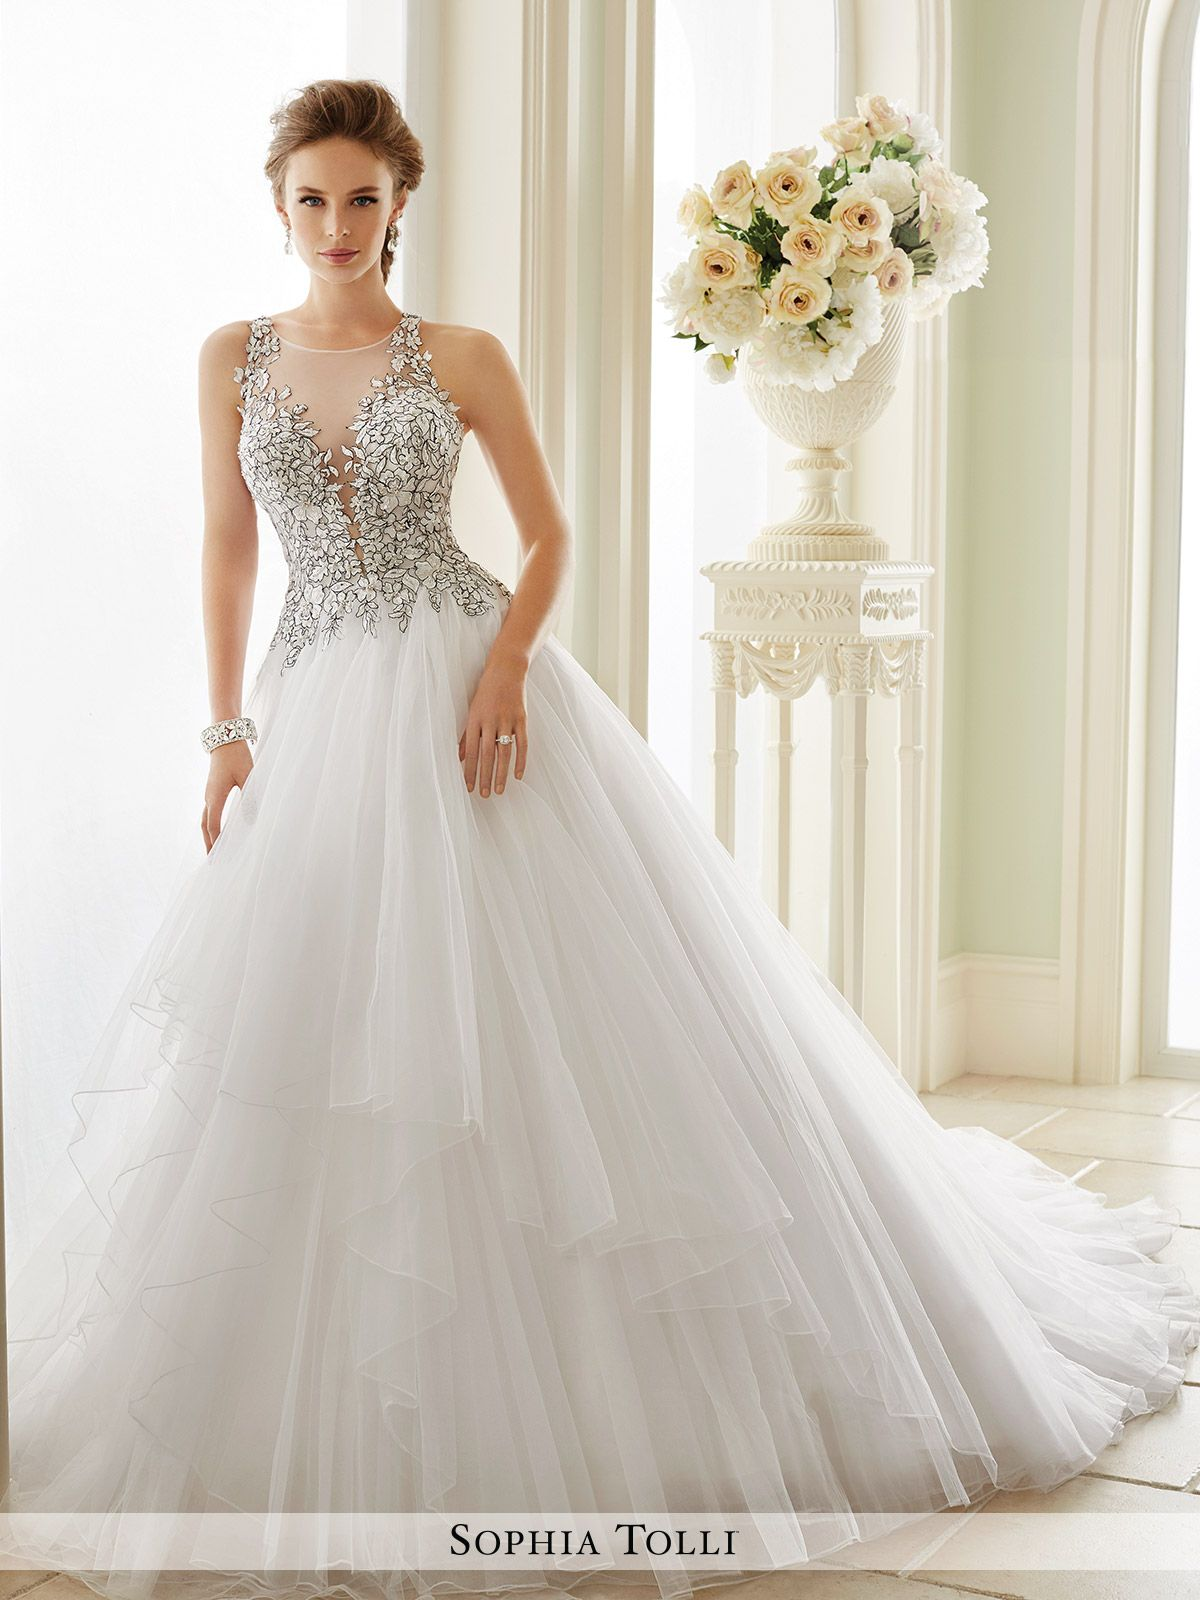 Sophia Tolli - Y21655 Dolce Vita - Sleeveless misty tulle ball gown with  slender illusion lace straps 127769a431bb